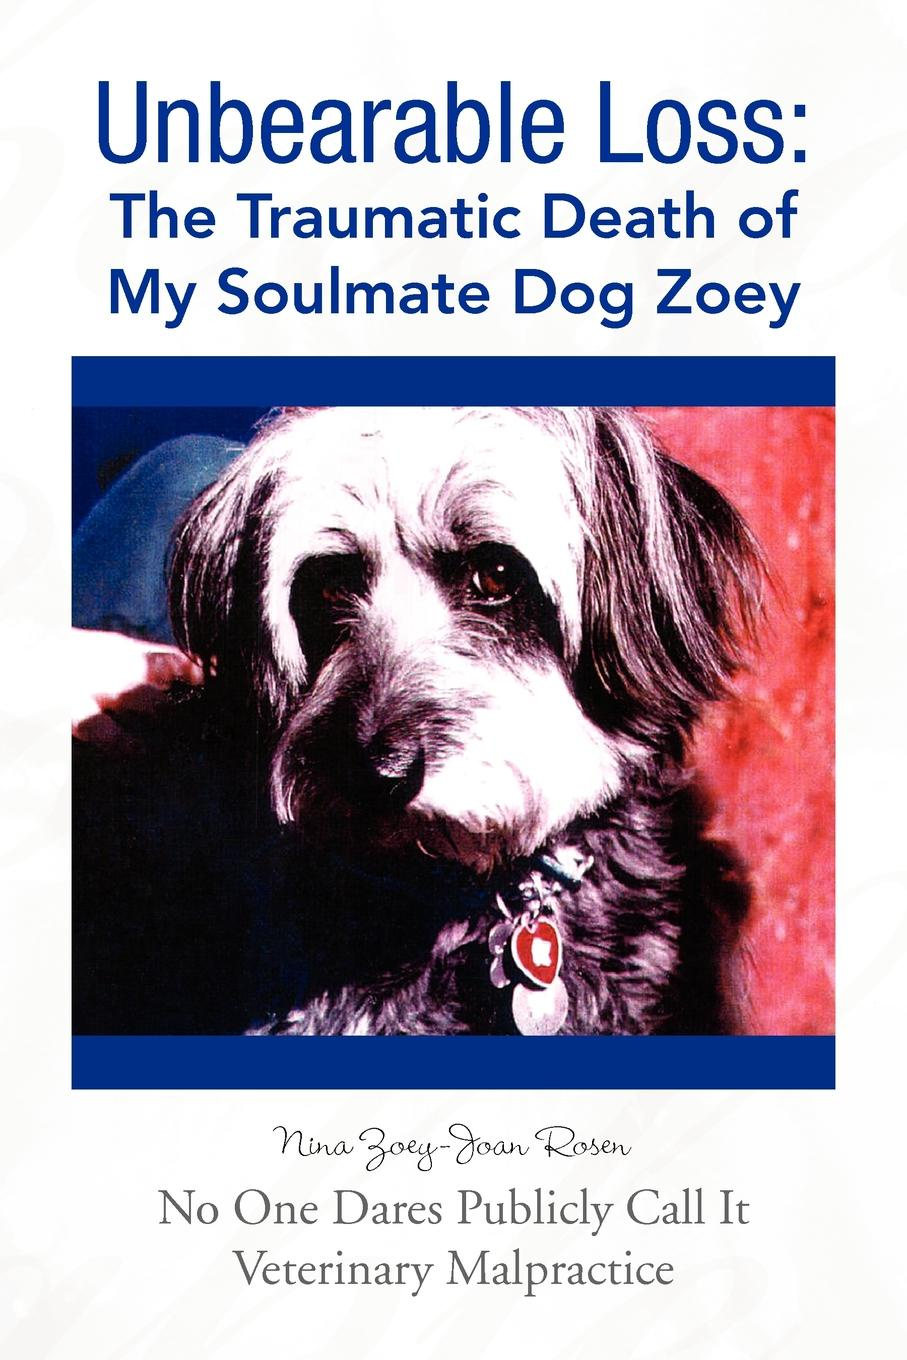 Nina Zoey-Joan Rosen Unbearable Loss. The Traumatic Death of My Soulmate Dog Zoey